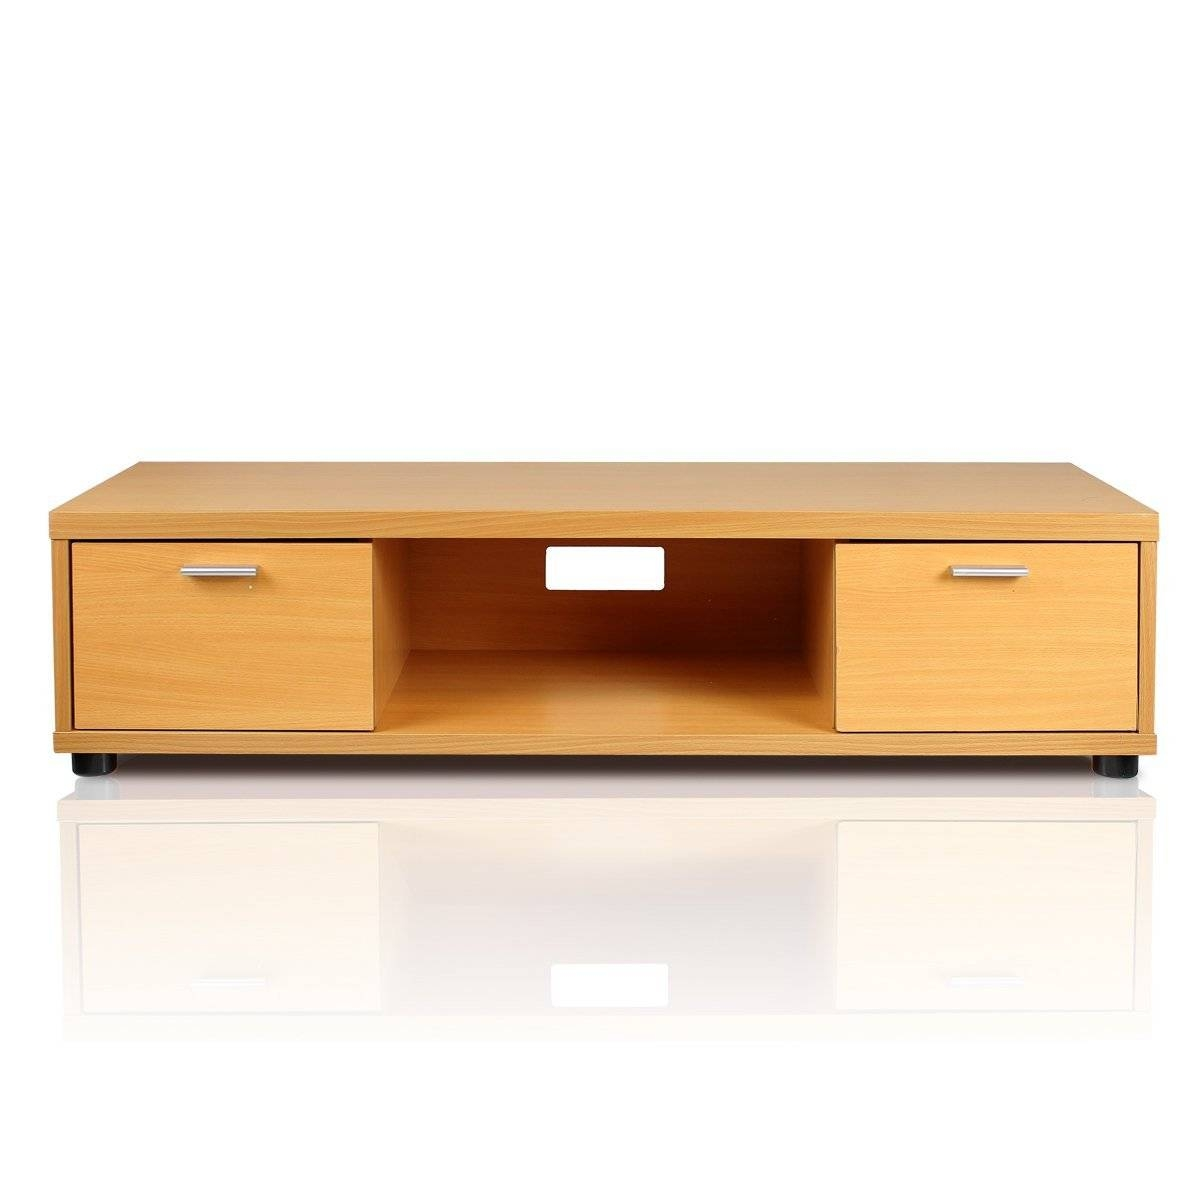 Design Cherry Wood Tv Stand Ideas #17098 intended for Orange Tv Stands (Image 3 of 15)